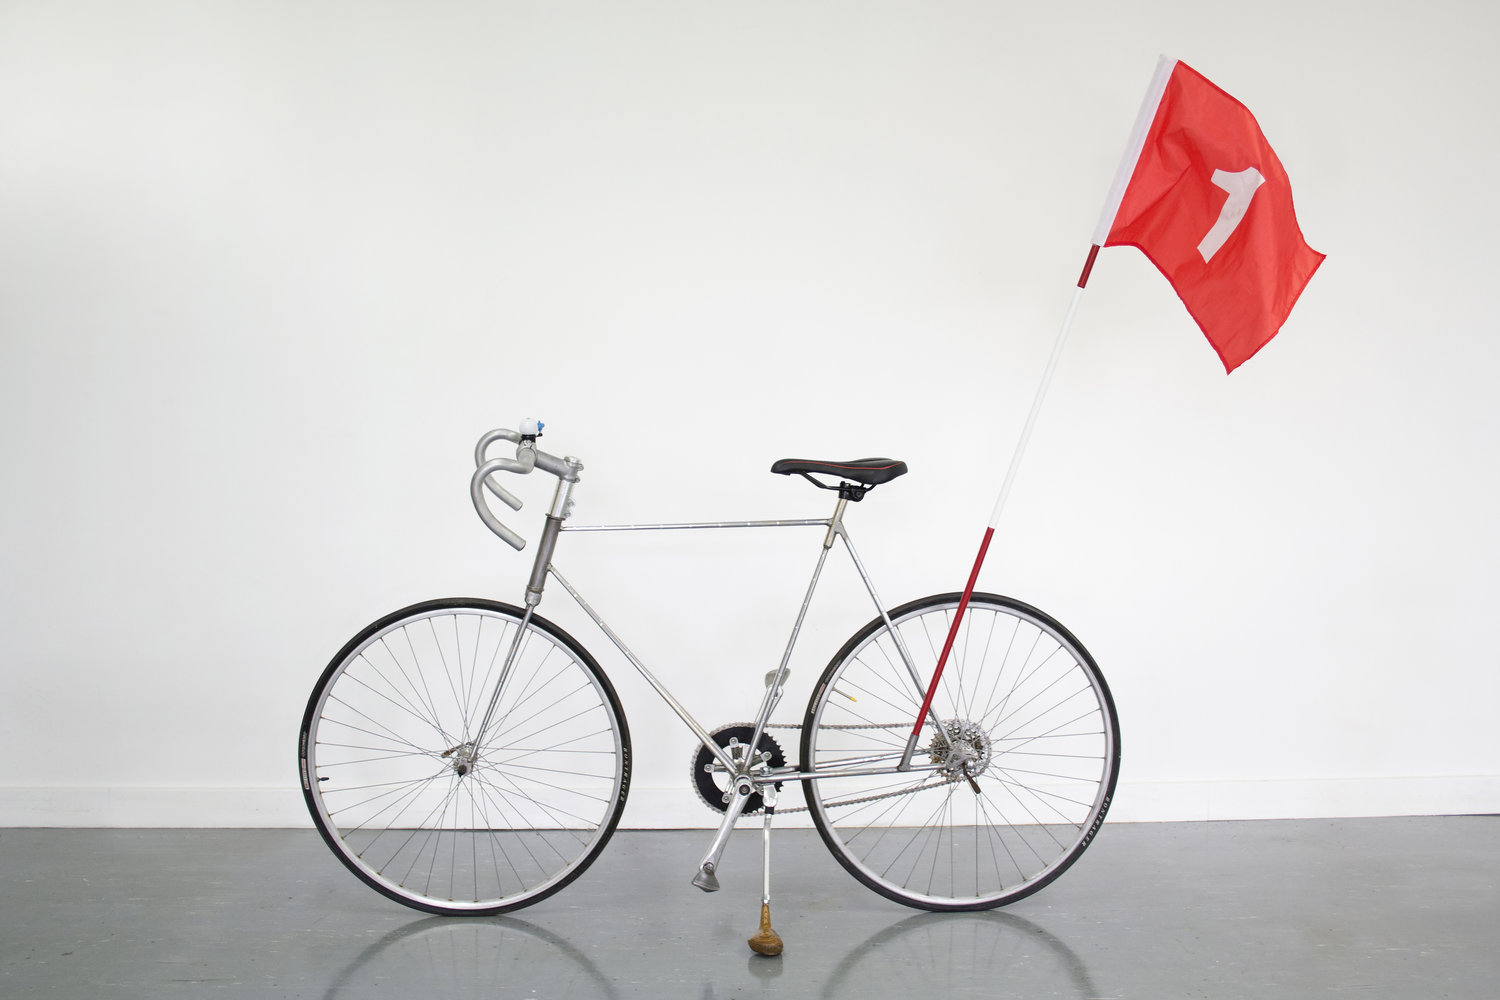 UK designer creates bicycle from discarded golf clubs